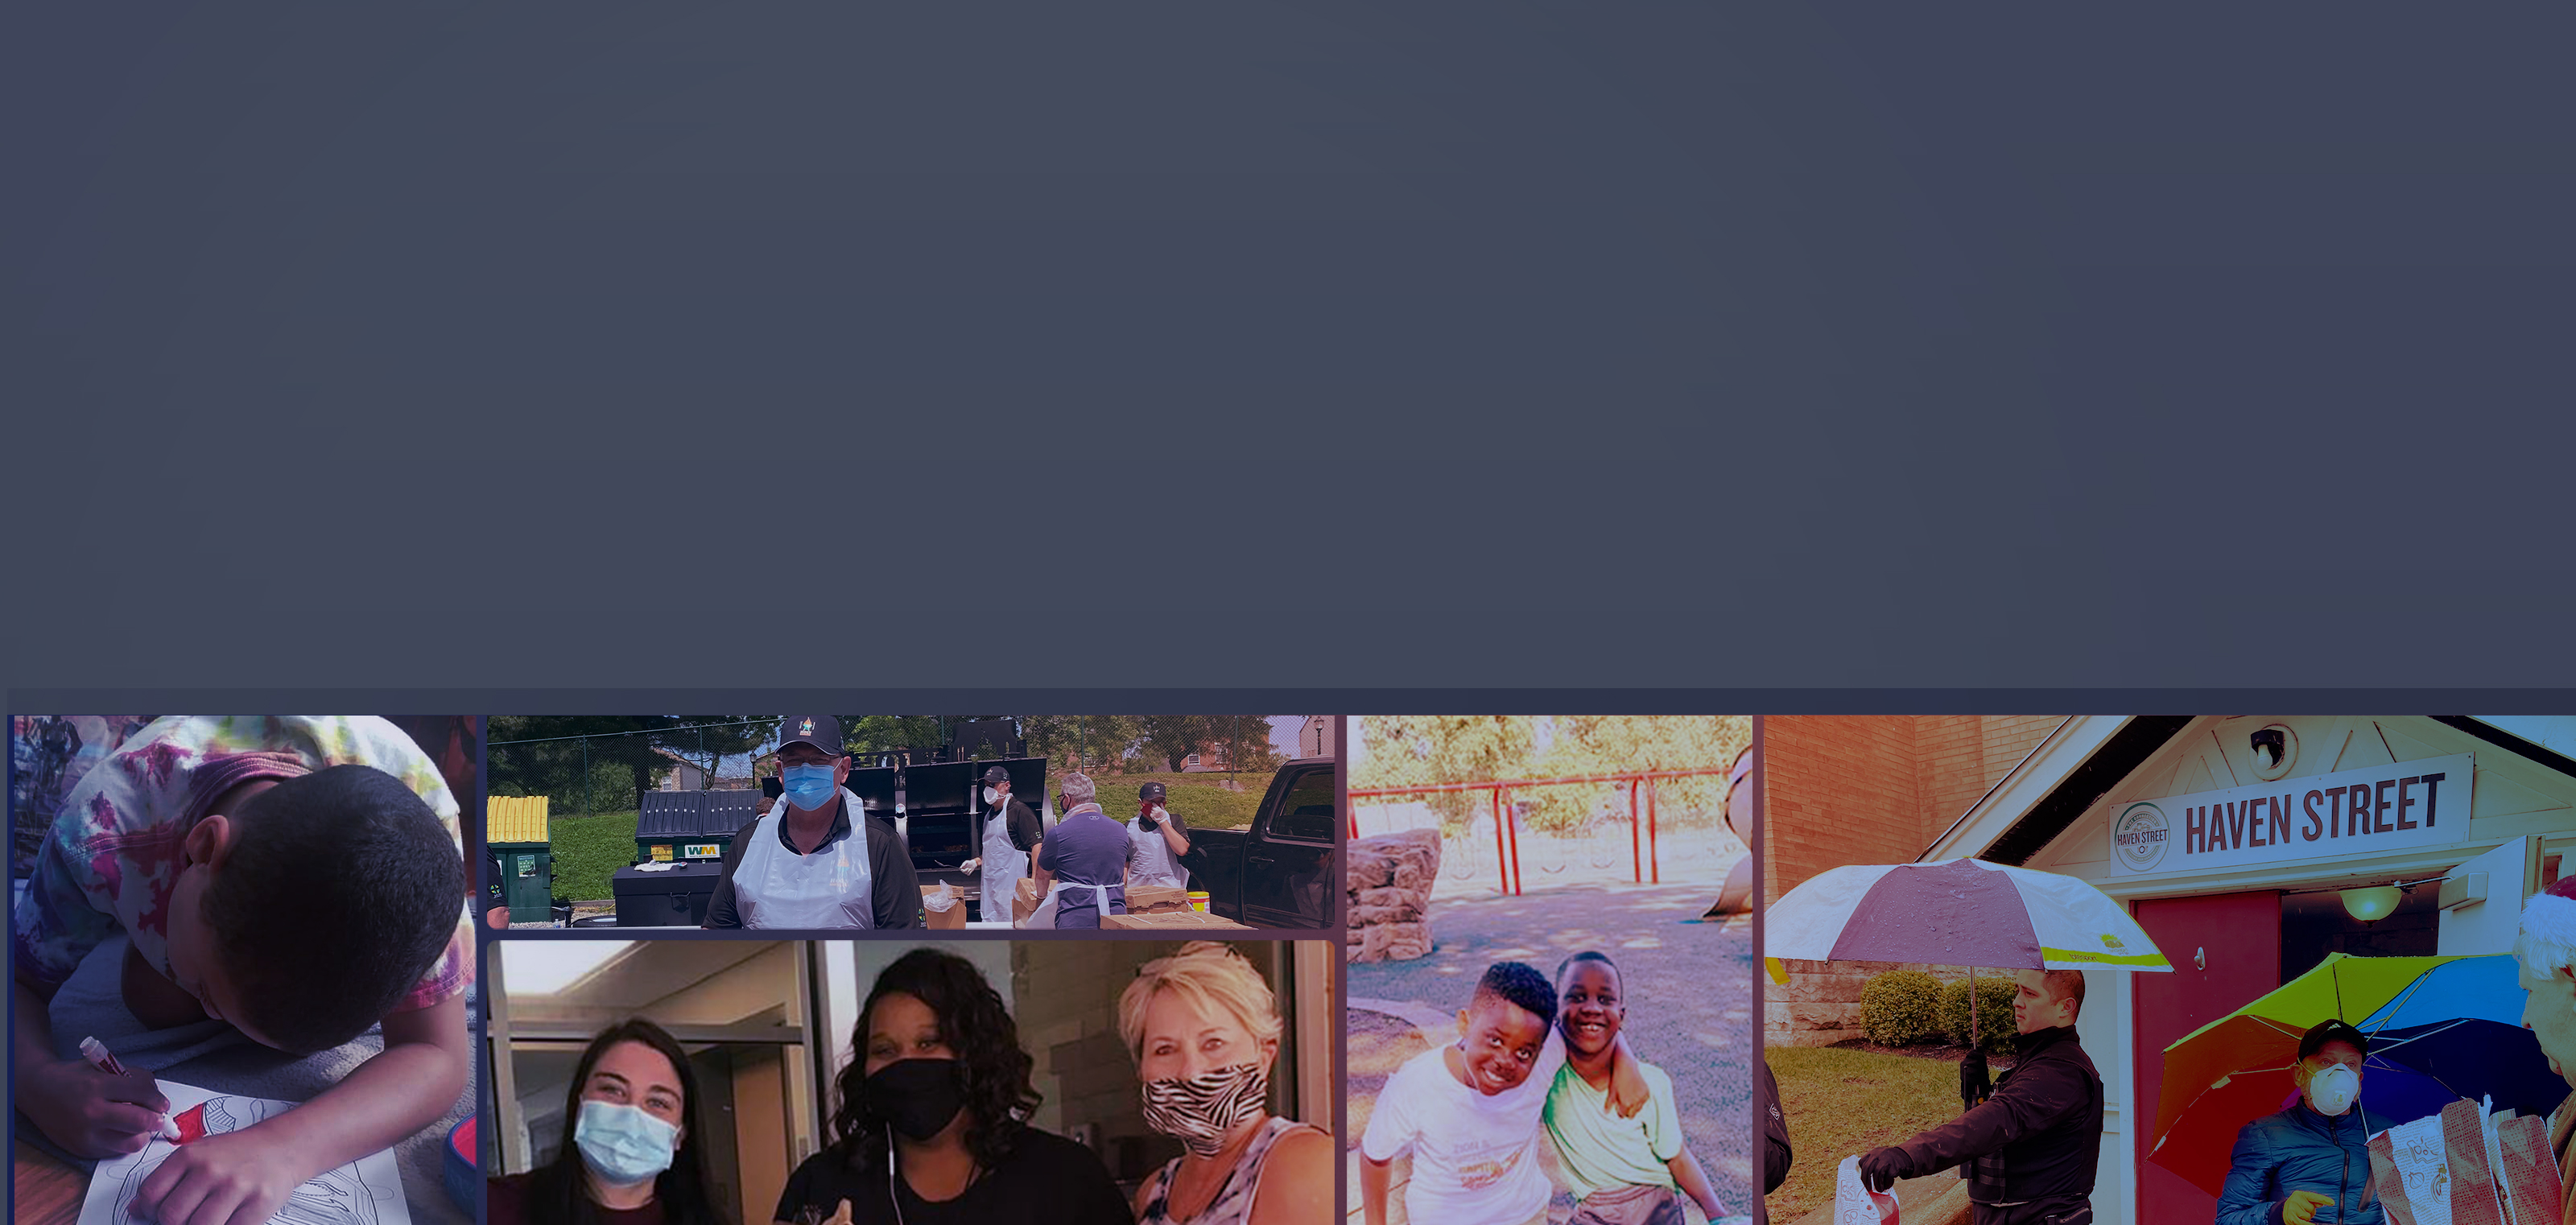 Work From Home Website Background 2